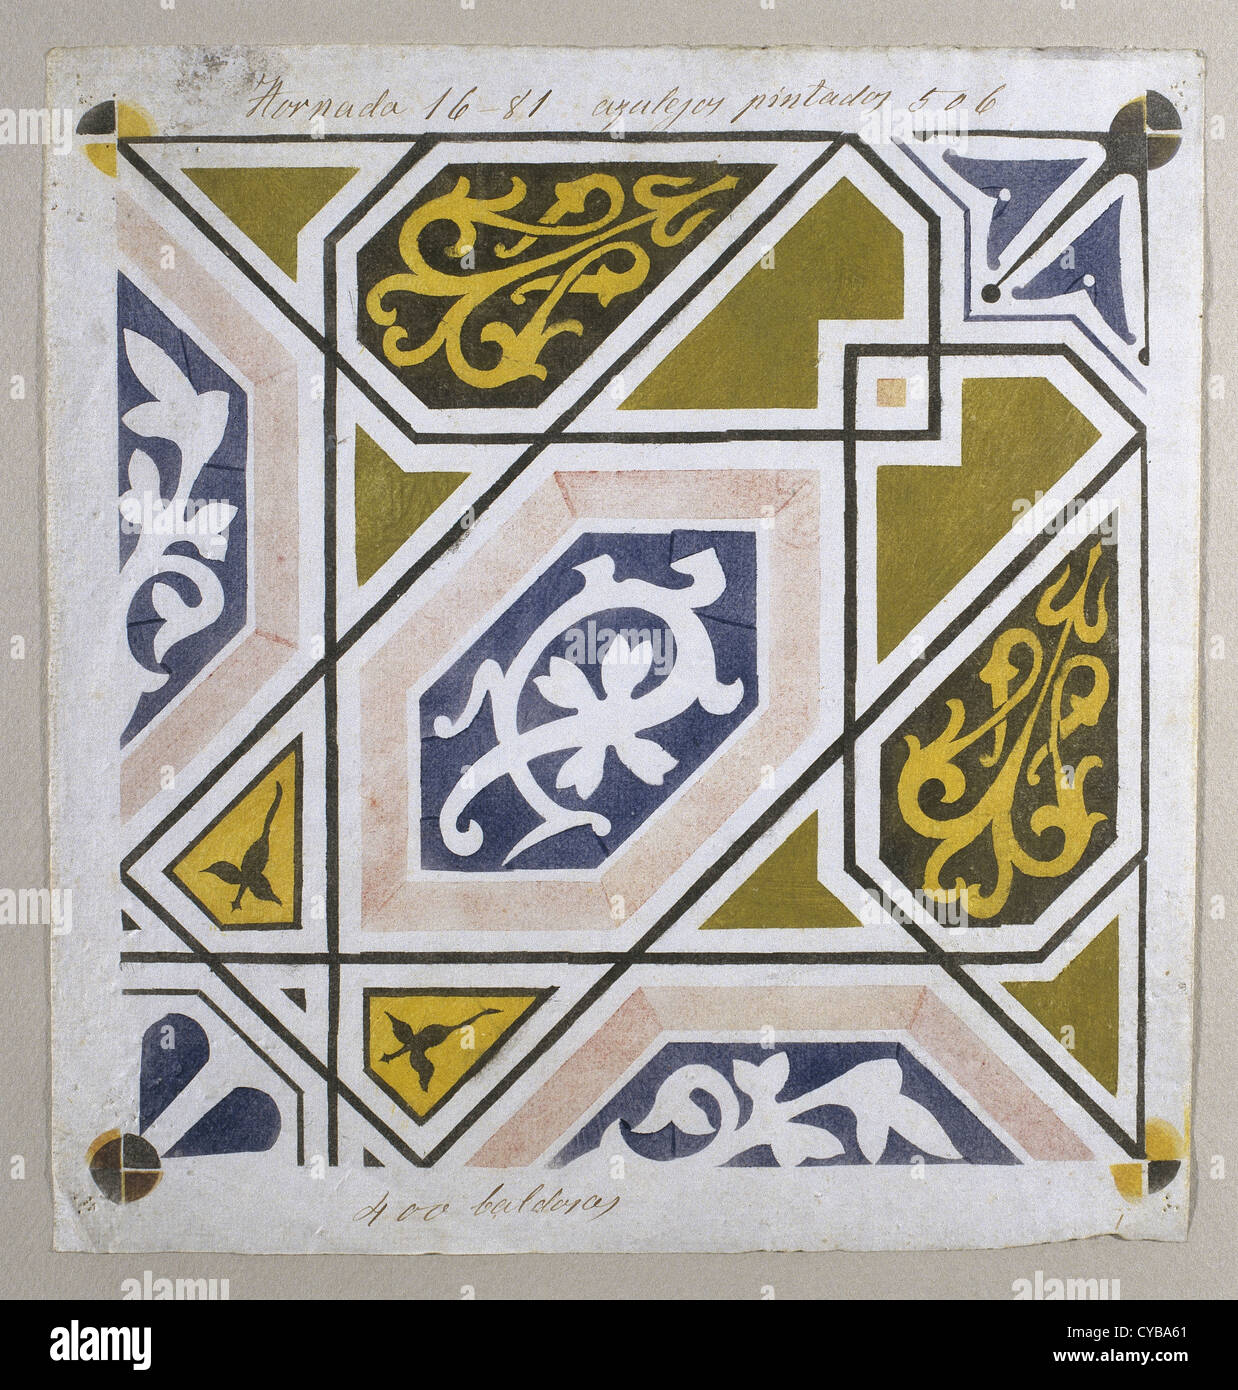 Catalan Modernism. Original desing of tile for the decoration of the Guell Palace. Artist Antoni Gaudi (1852-1926). - Stock Image